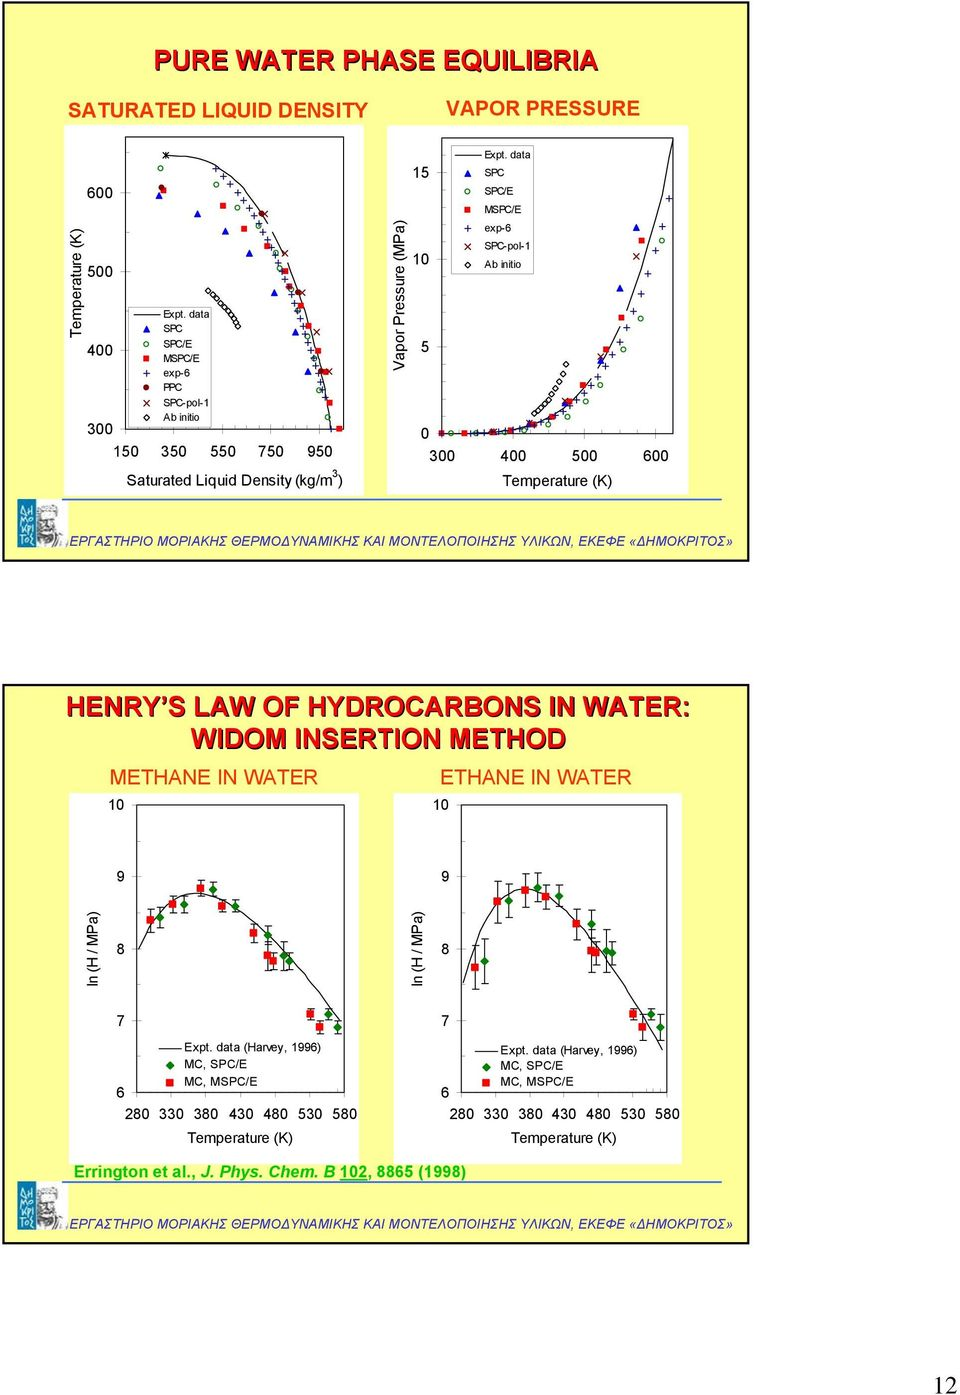 data 15 SPC SPC/E MSPC/E exp-6 SPC-pol-1 10 Ab initio 5 0 300 400 500 600 Temperature (K) HERY S LAW OF HYDROCARBOS I WATER: WIDOM ISERTIO METHOD METHAE I WATER ETHAE I WATER